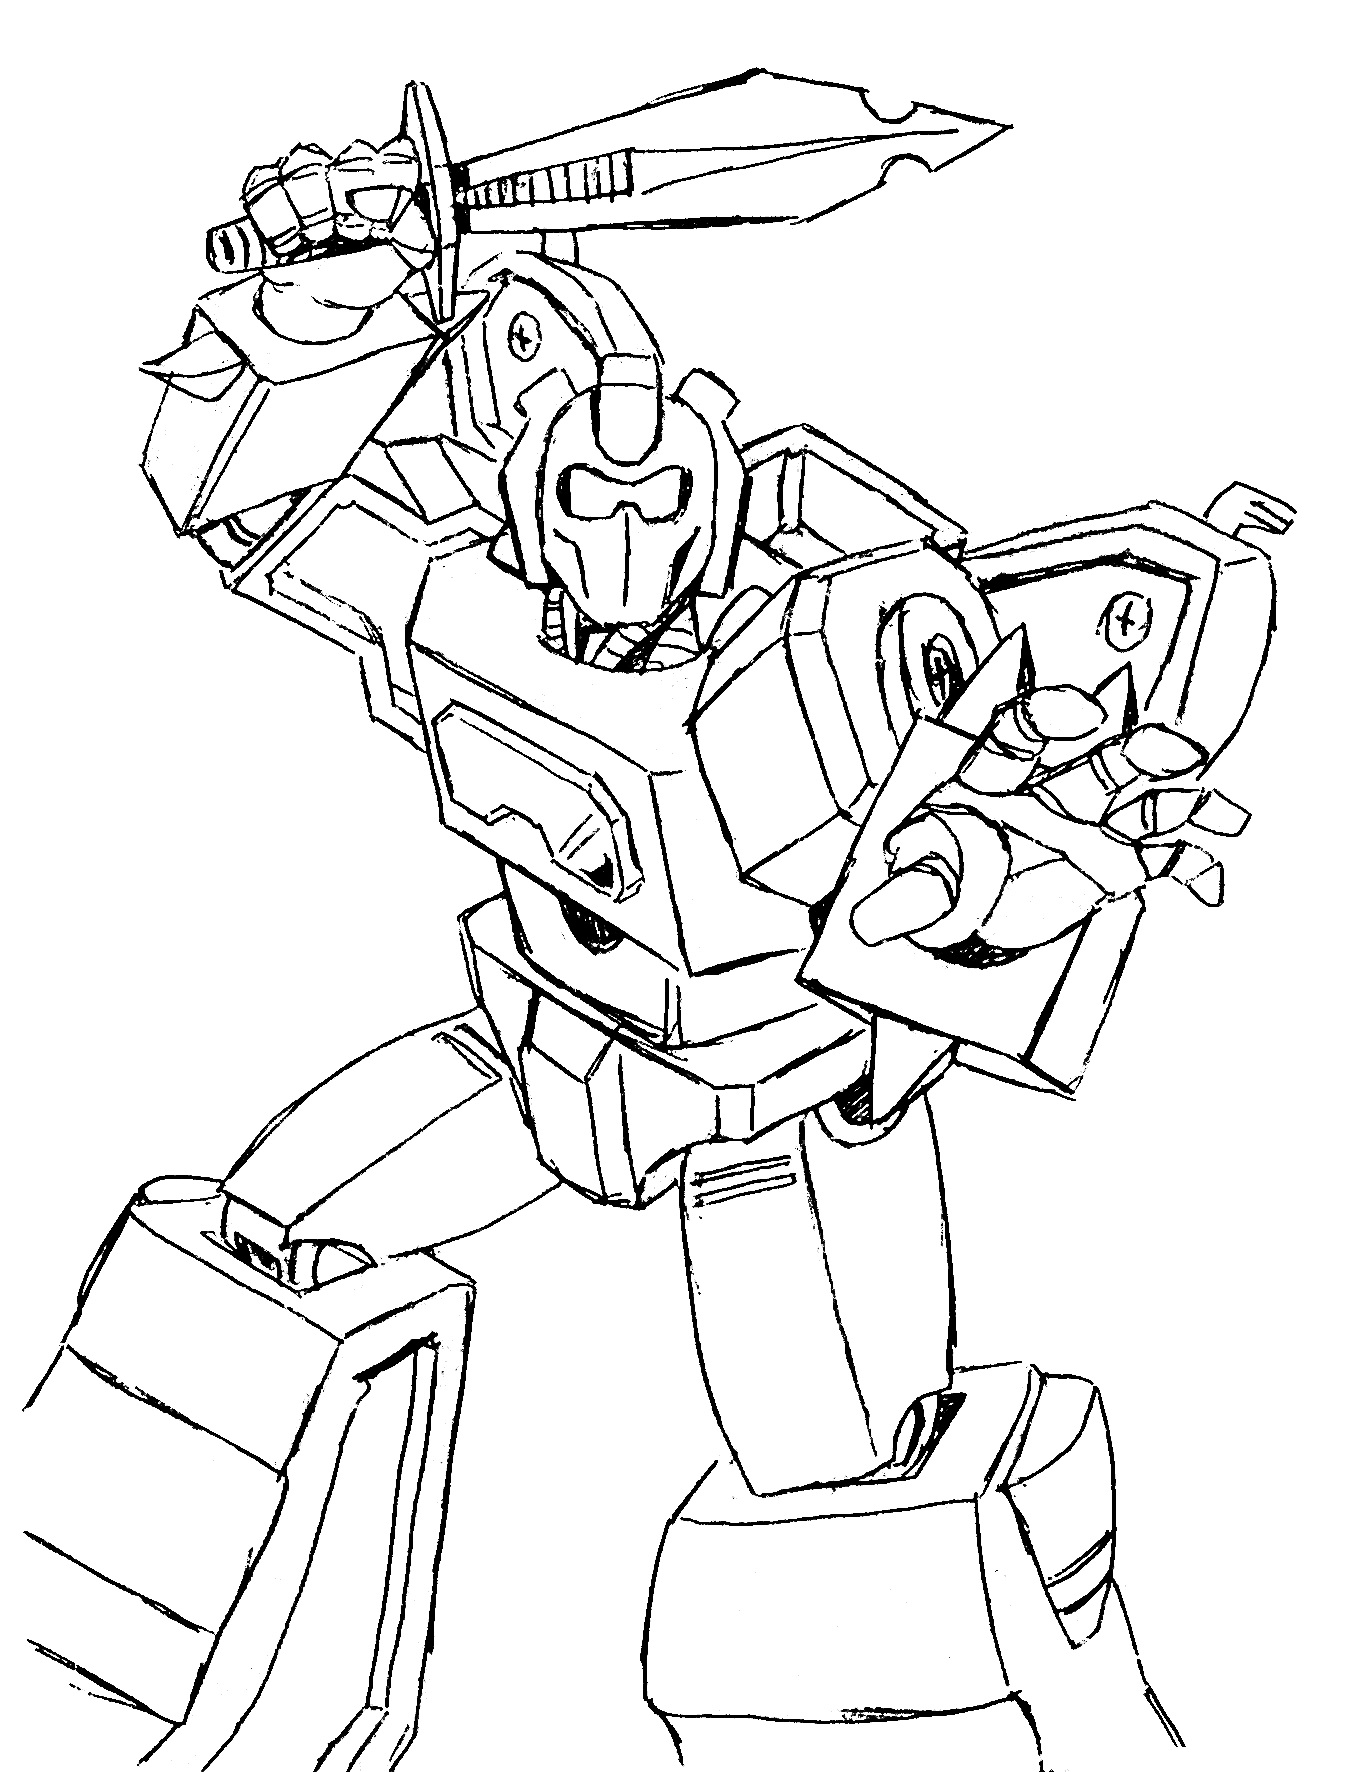 Transformers 3 Fighting Coloring Page